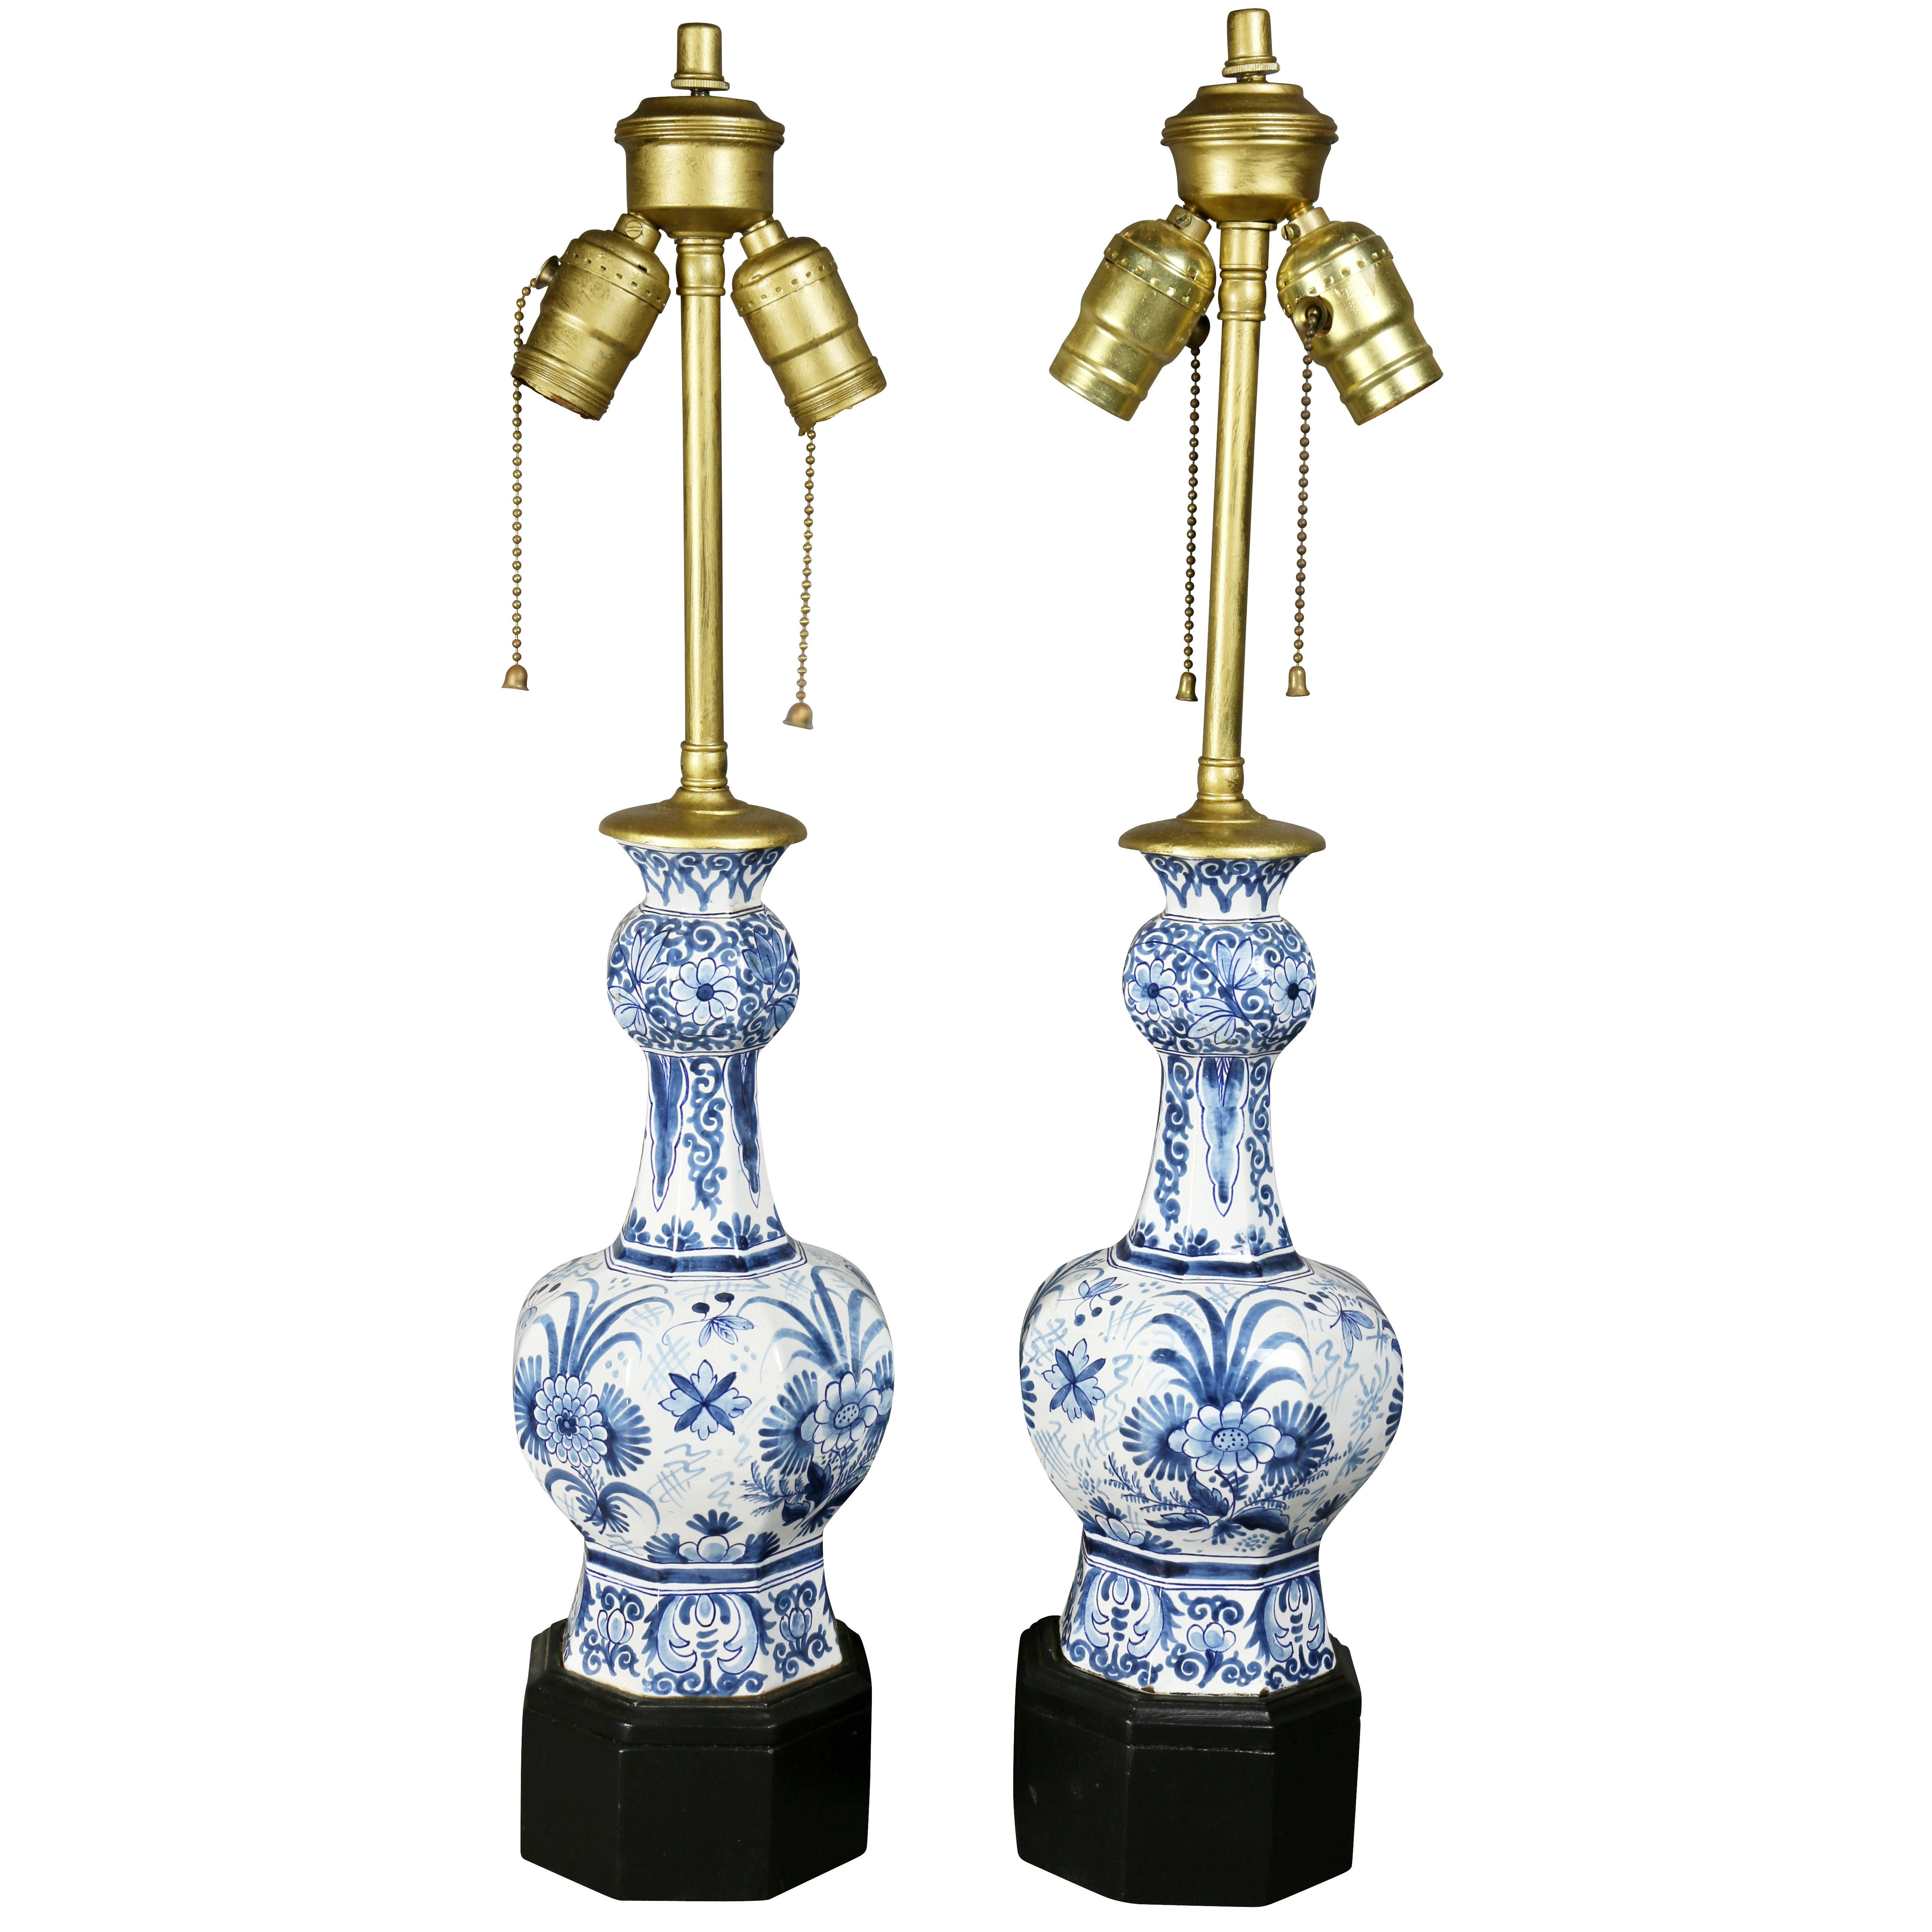 Pair of delft pottery table lamps for sale at 1stdibs arubaitofo Images